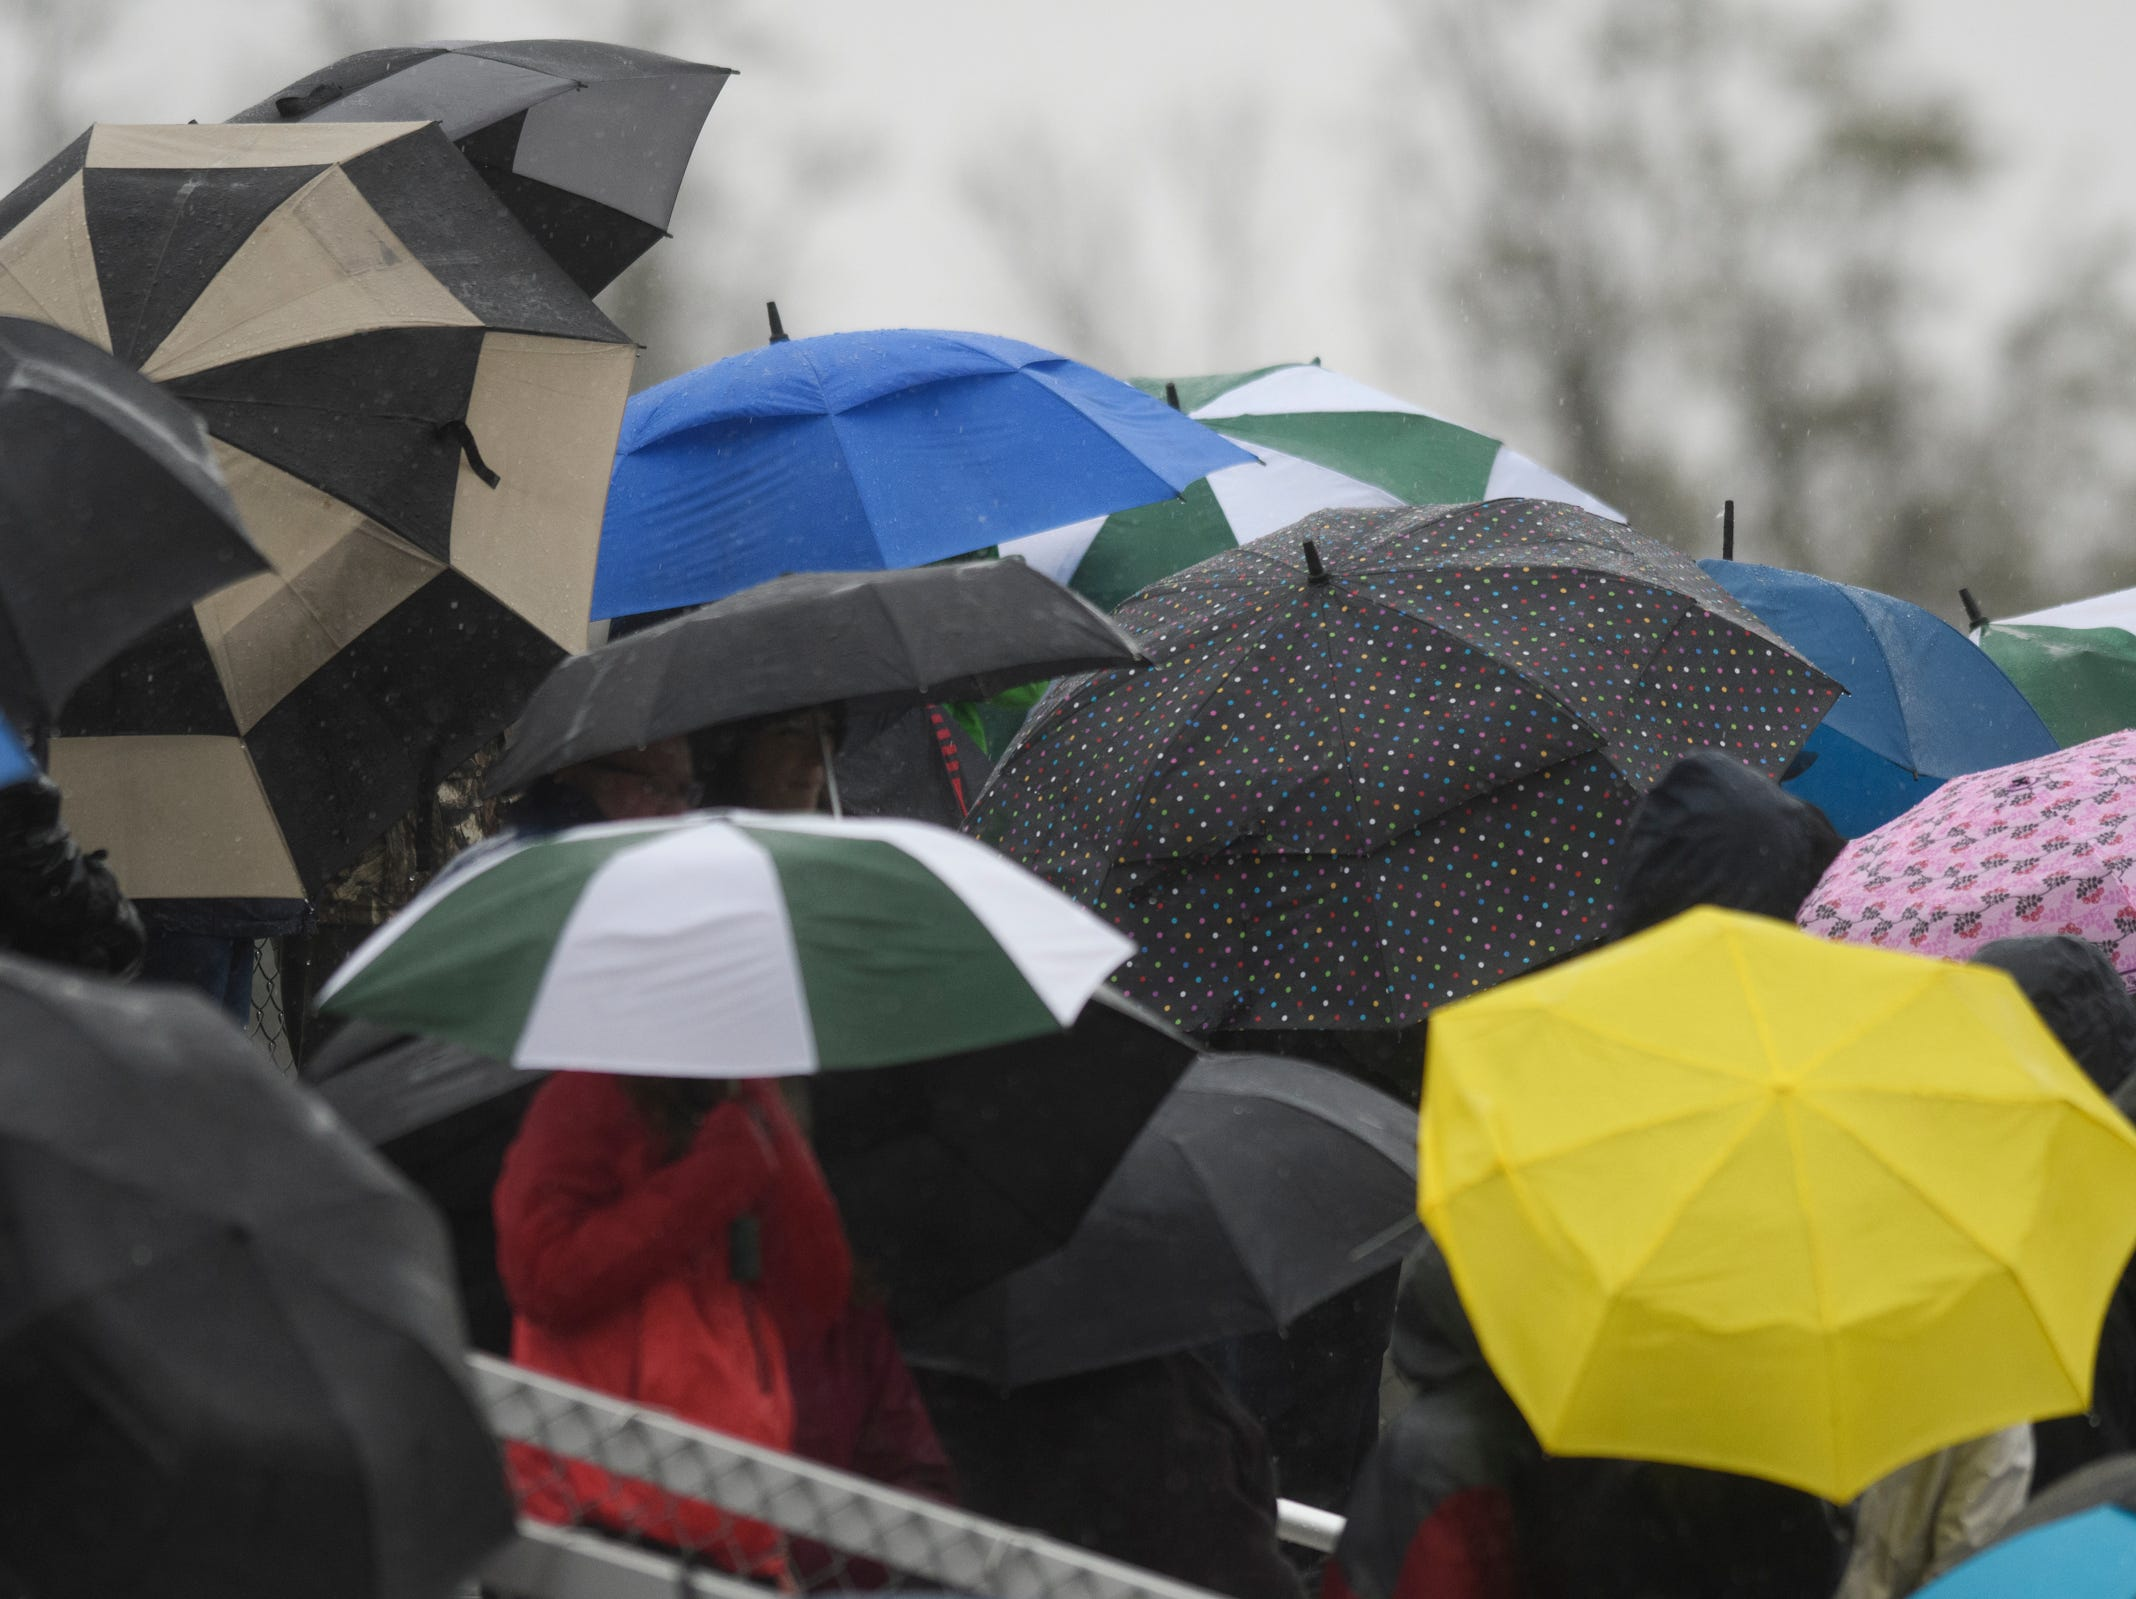 Family and fans watch the game from underneath umbrellas during the Division I boys soccer championship game between the St. Johnsbury Hilltoppers and the Champlain Valley Union Redhawks at Buck Hard Field on Saturday morning November 3, 2018 in Burlington.